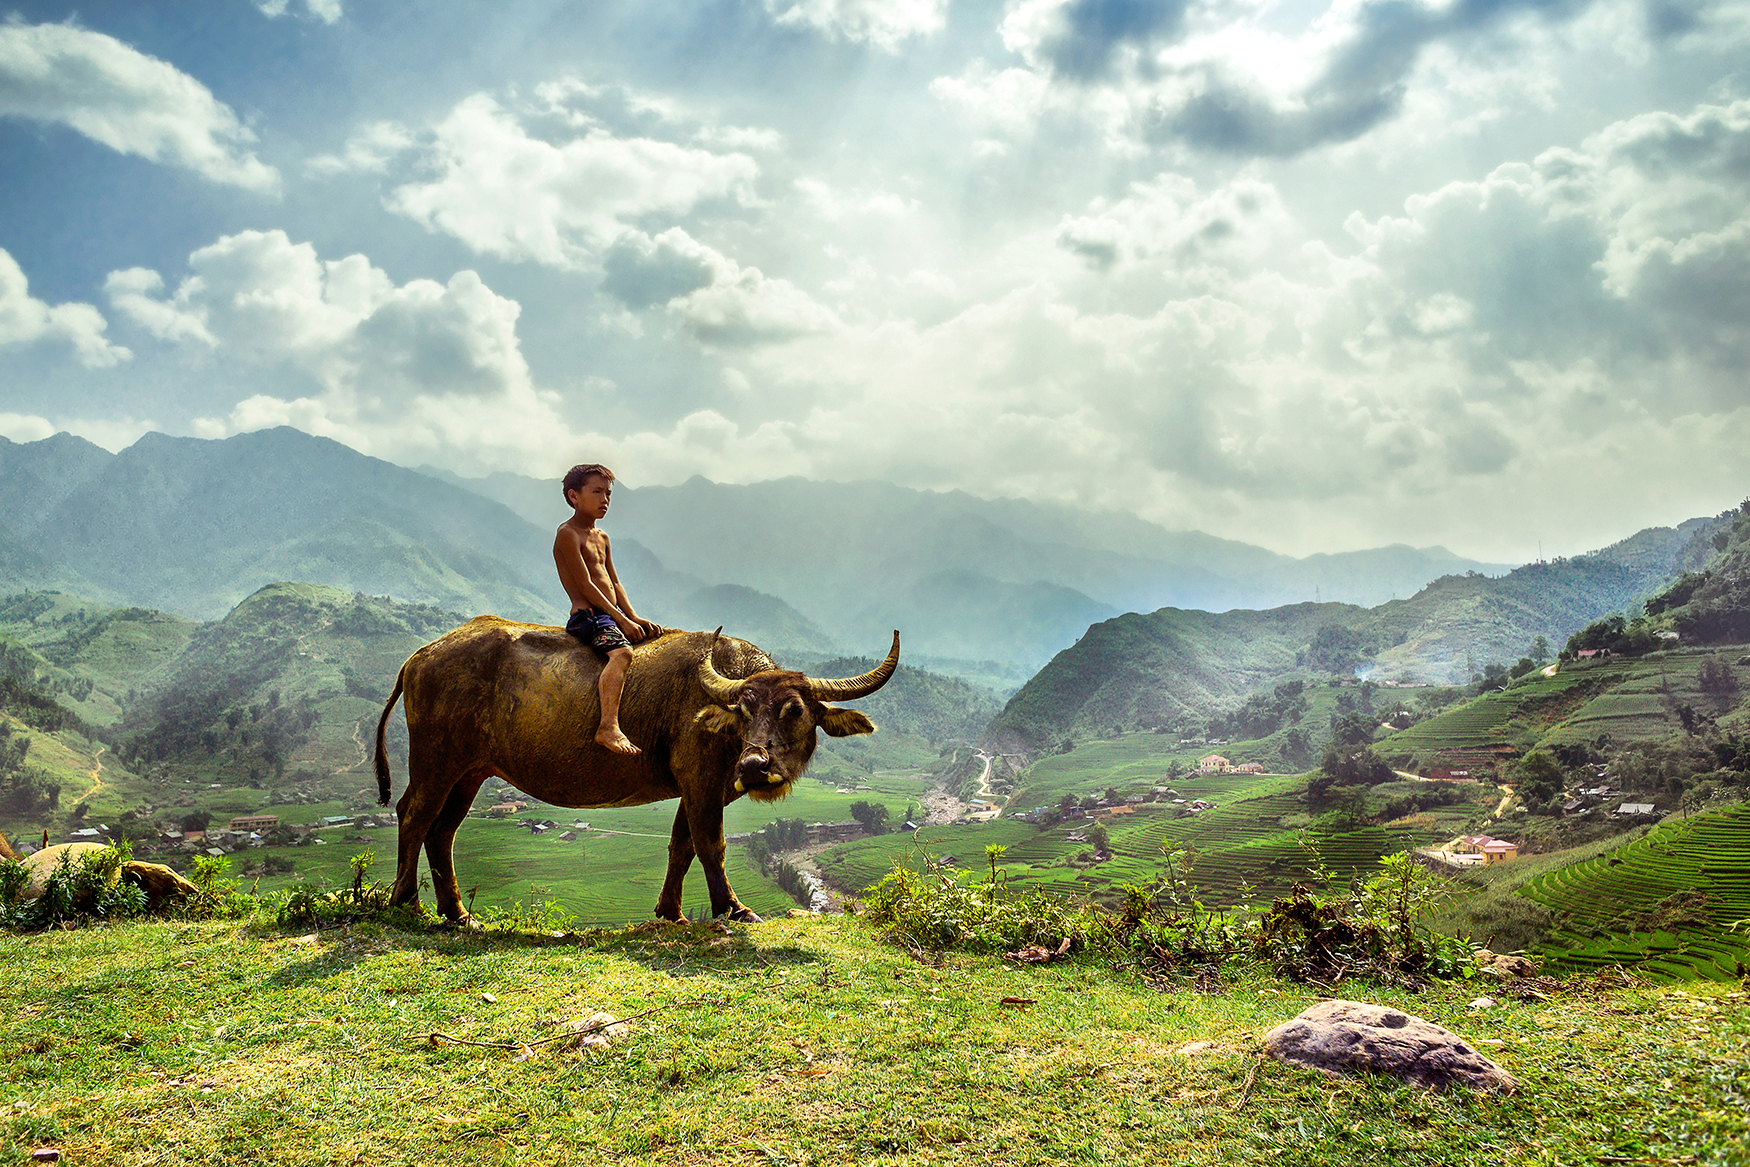 A local man sitting on a cow with mountains behind